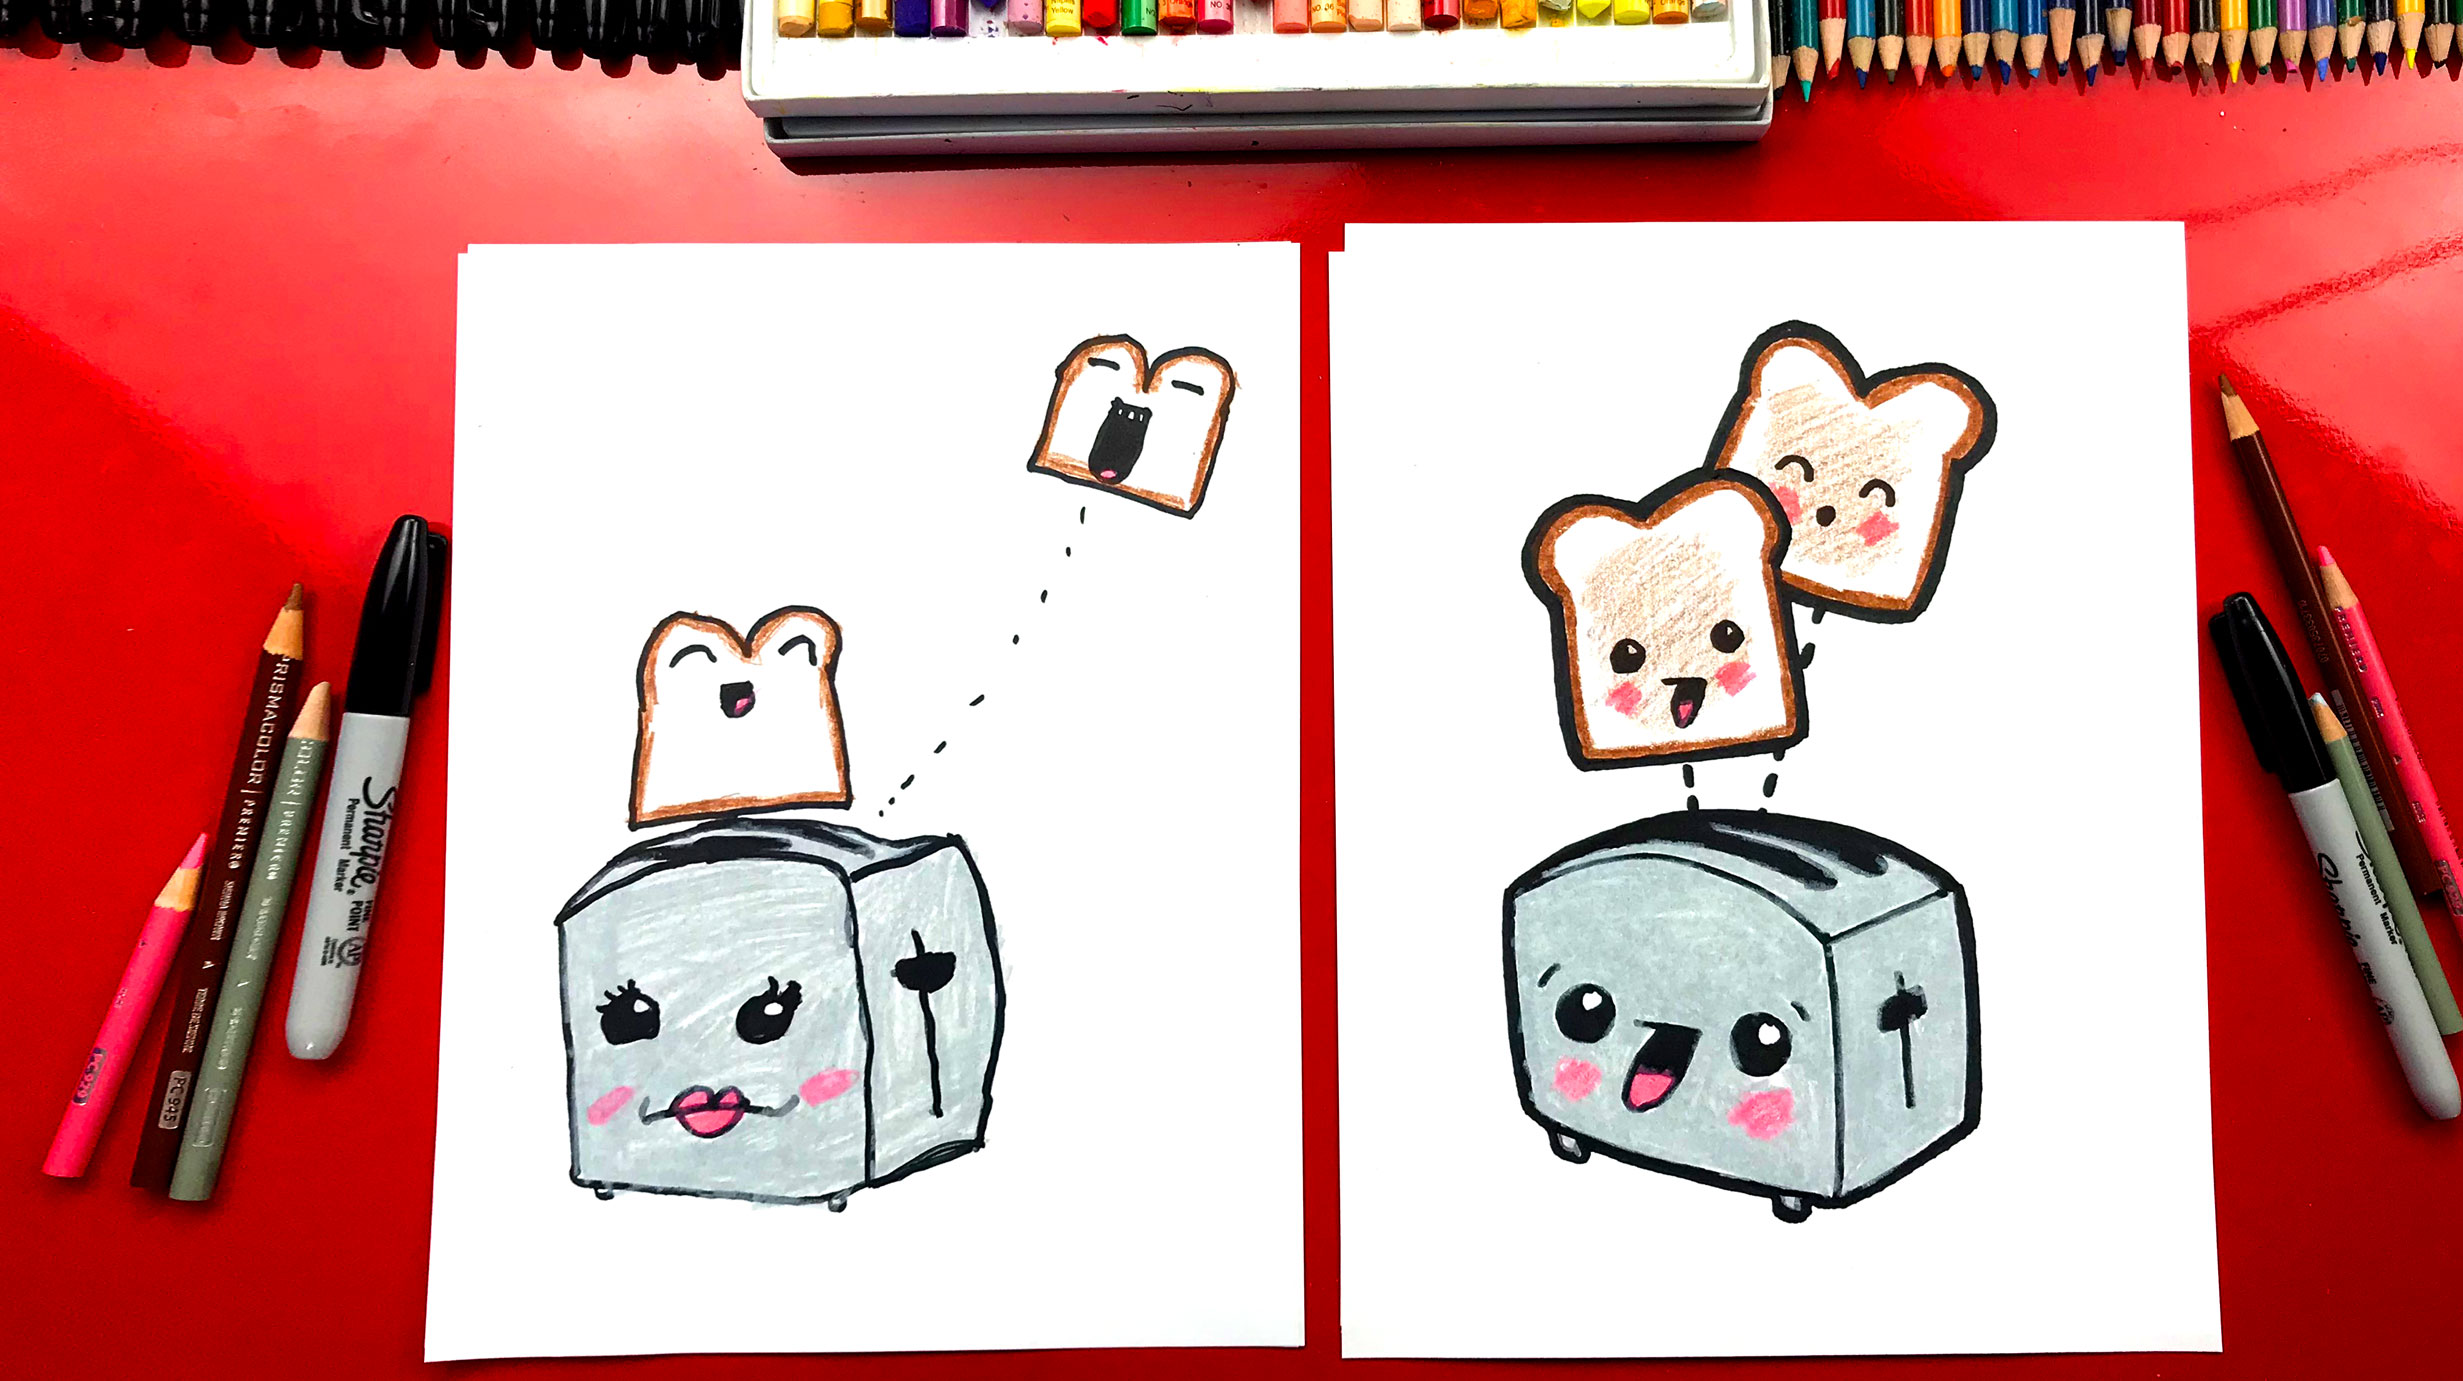 How To Draw Funny Toast And Toaster - Art For Kids Hub